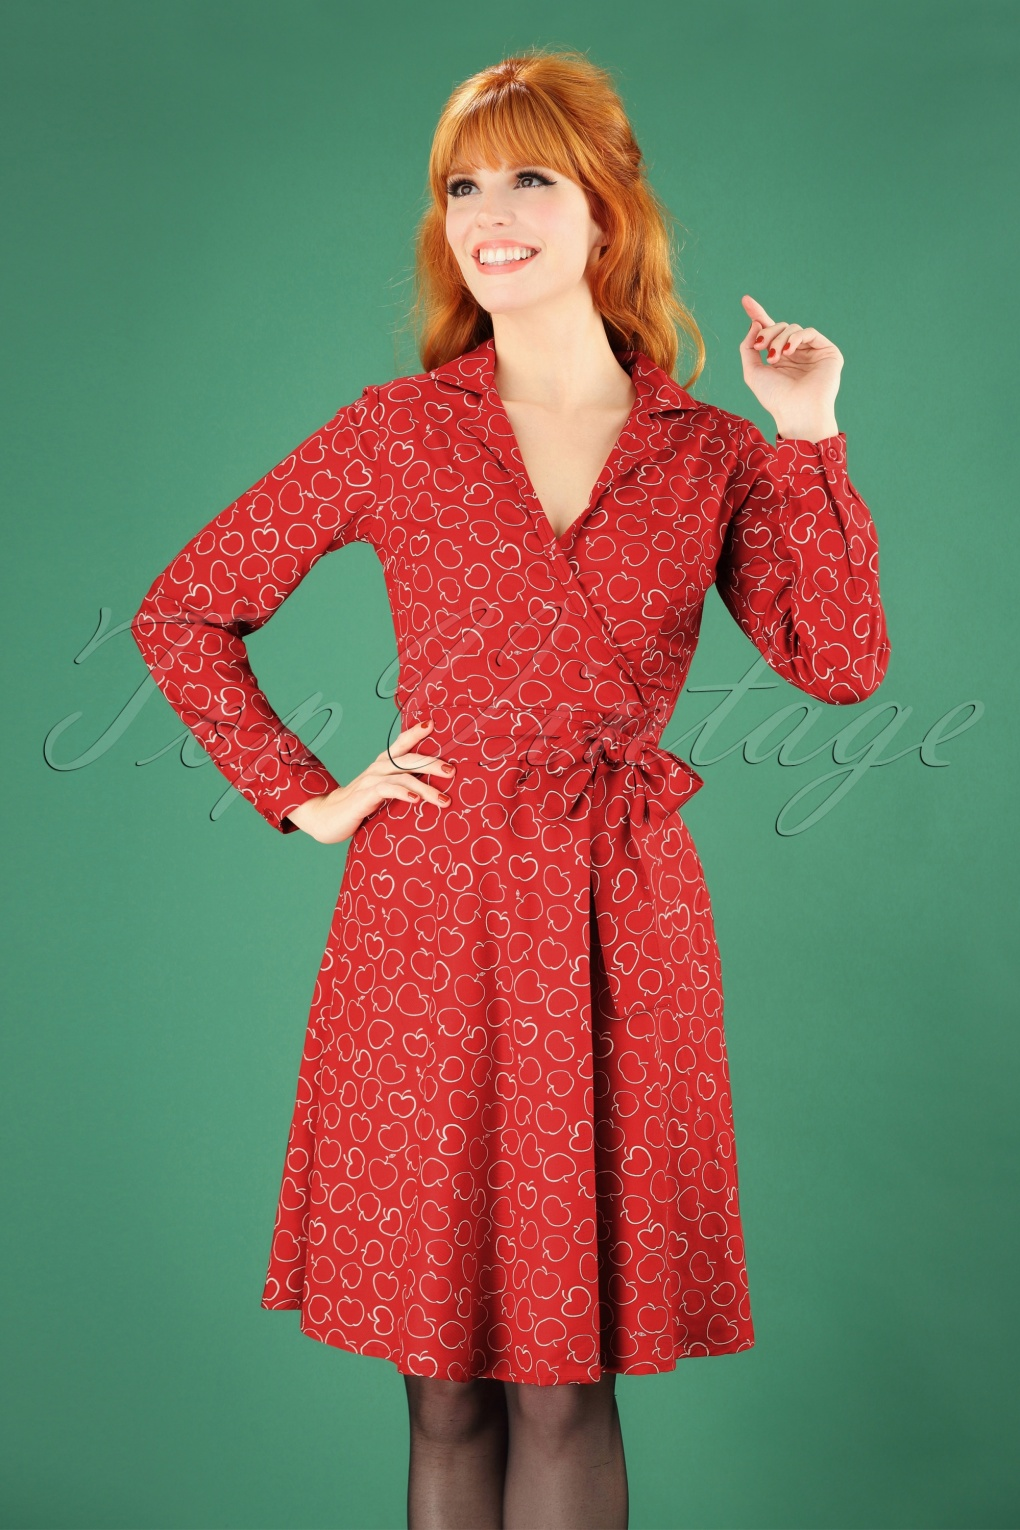 Vintage Coats & Jackets | Retro Coats and Jackets 60s Apple Swing Dress in Red £64.98 AT vintagedancer.com